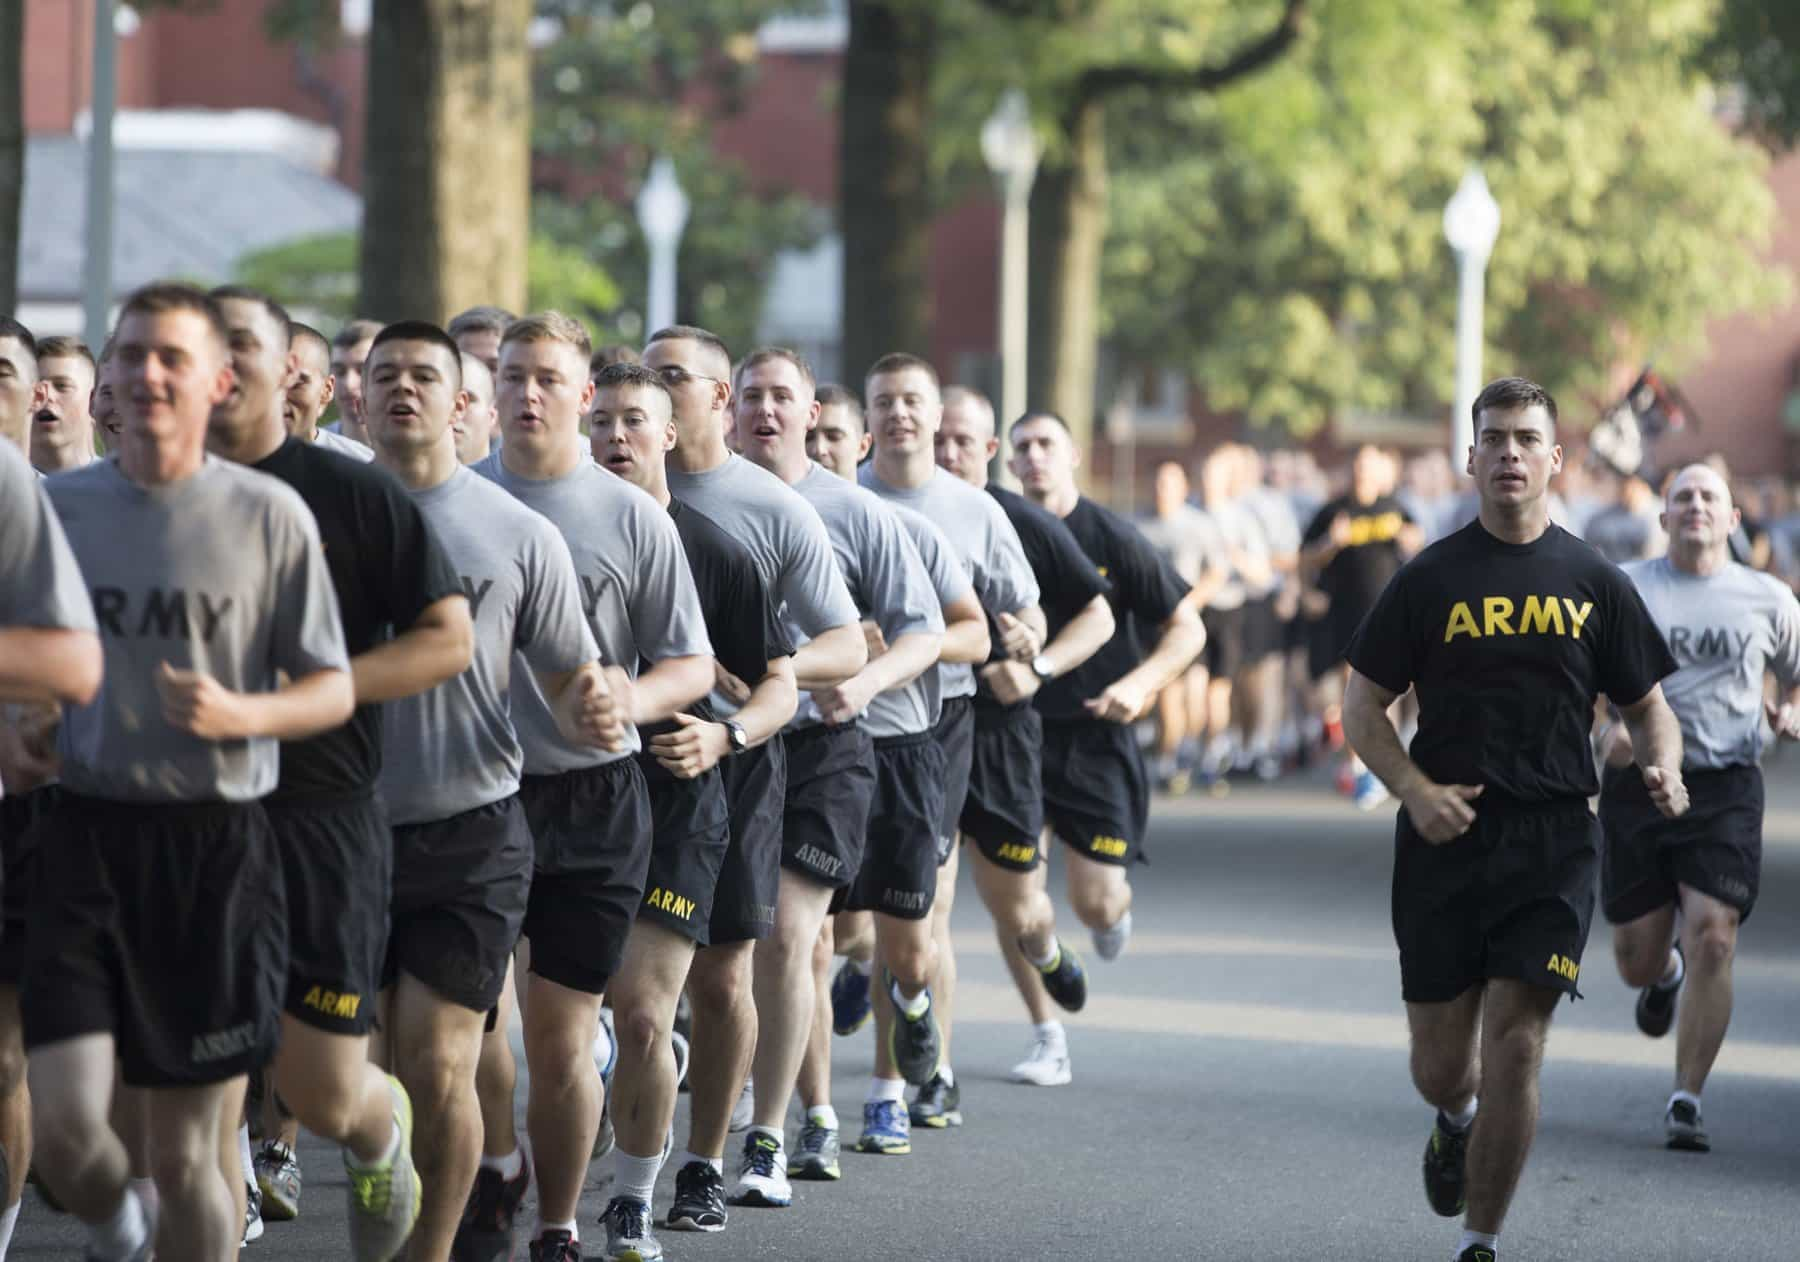 photo airman's run